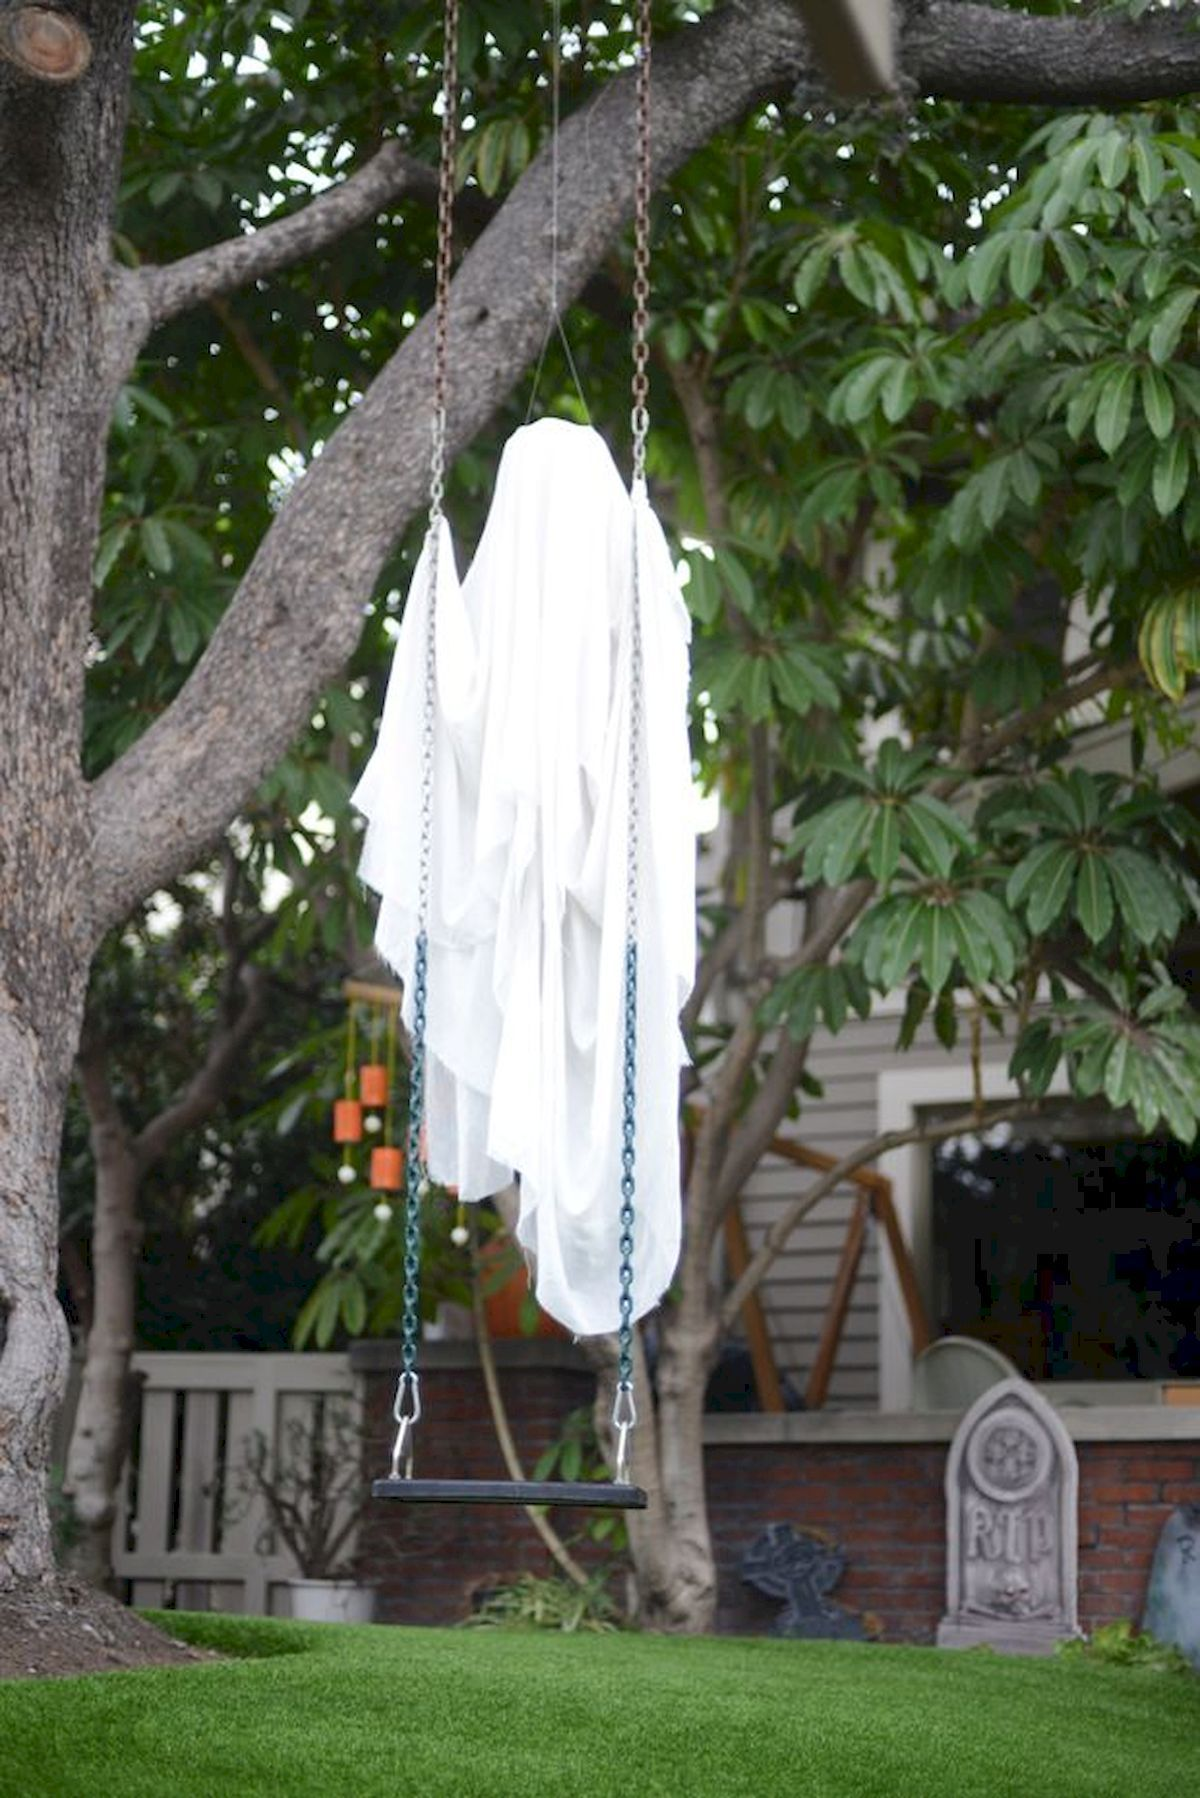 60 DIY Outdoor Halloween Decorations Ideas And Makeover Diy - diy outdoor halloween decorations